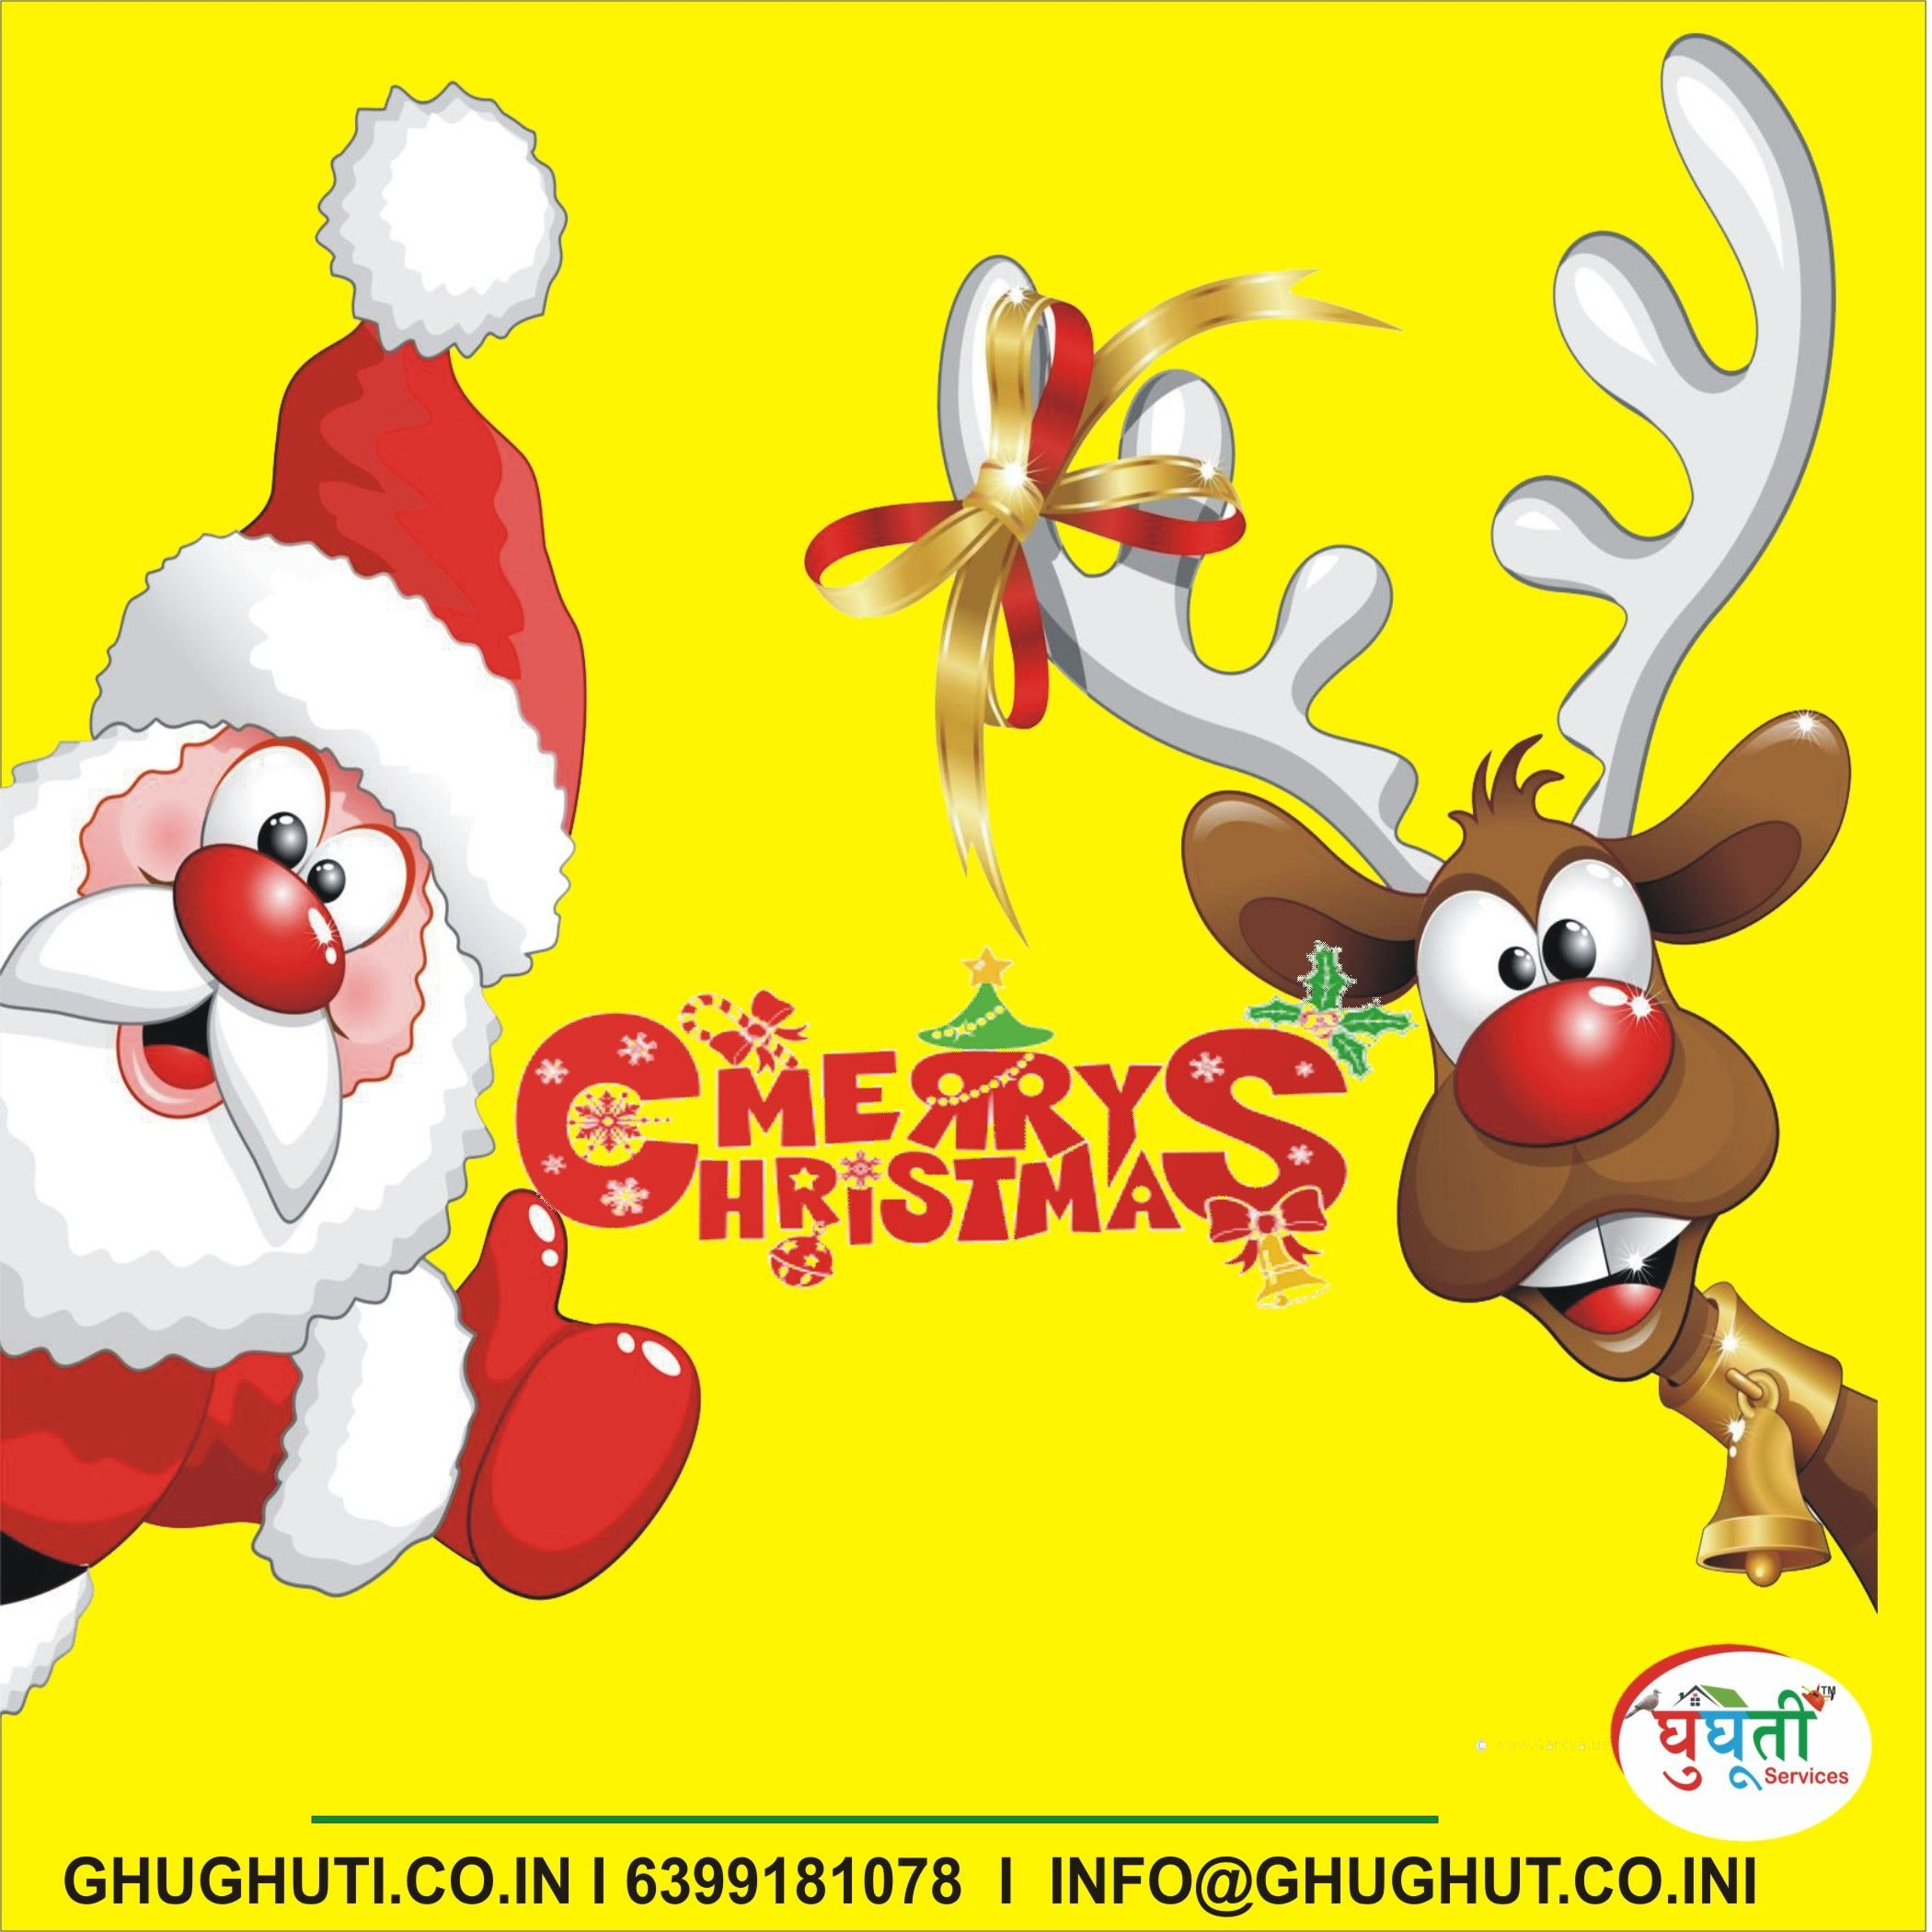 Merry Christmas 2020 Construction Merry Christmas   Ghughuti Construction & Services   Merry